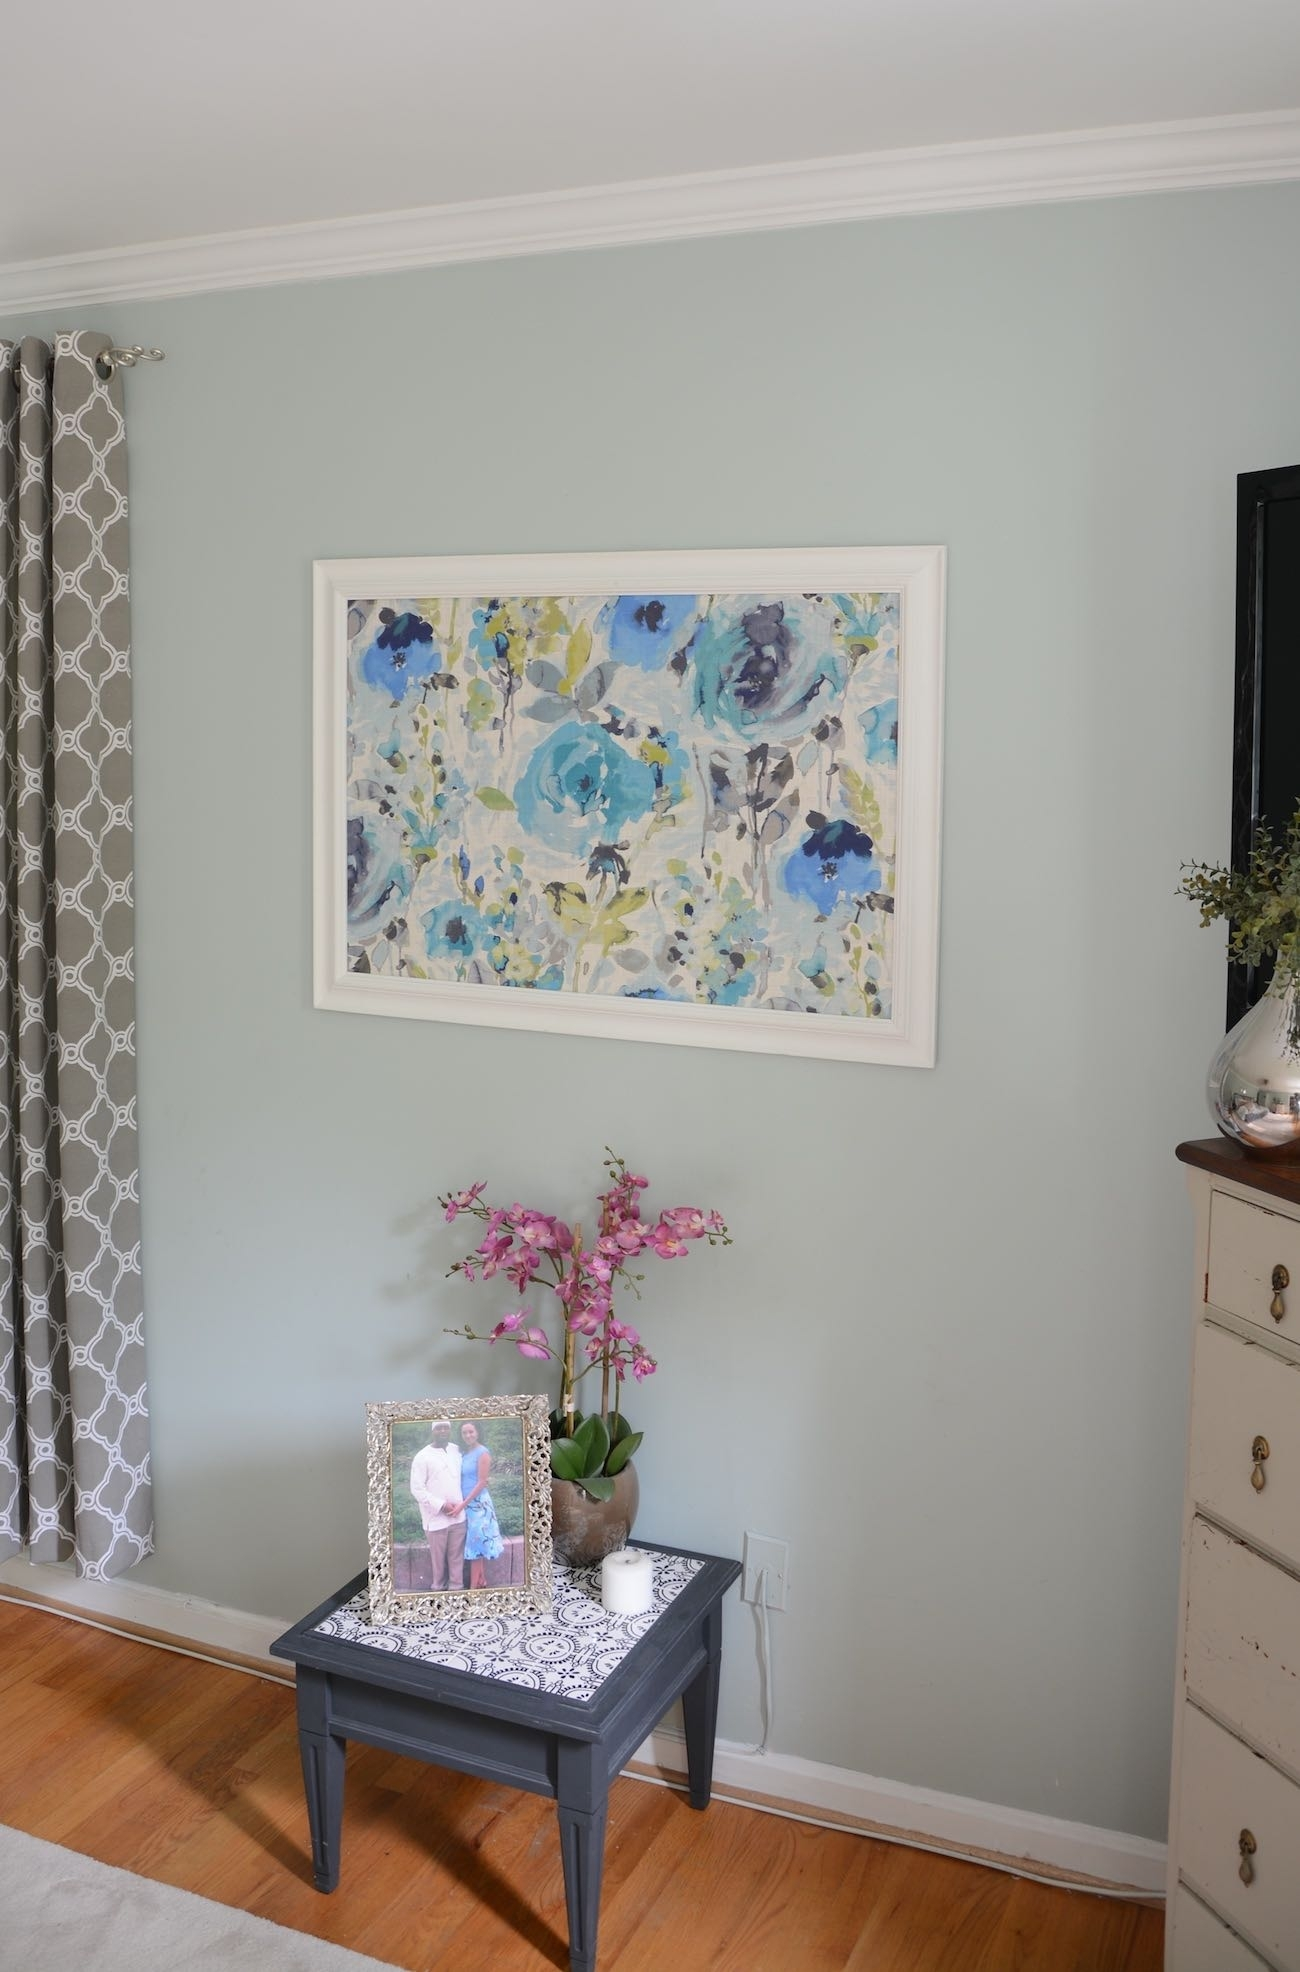 How To Frame Fabric For Wall Art With A Picture Frame Pertaining To Newest Framed Textile Wall Art (View 14 of 15)